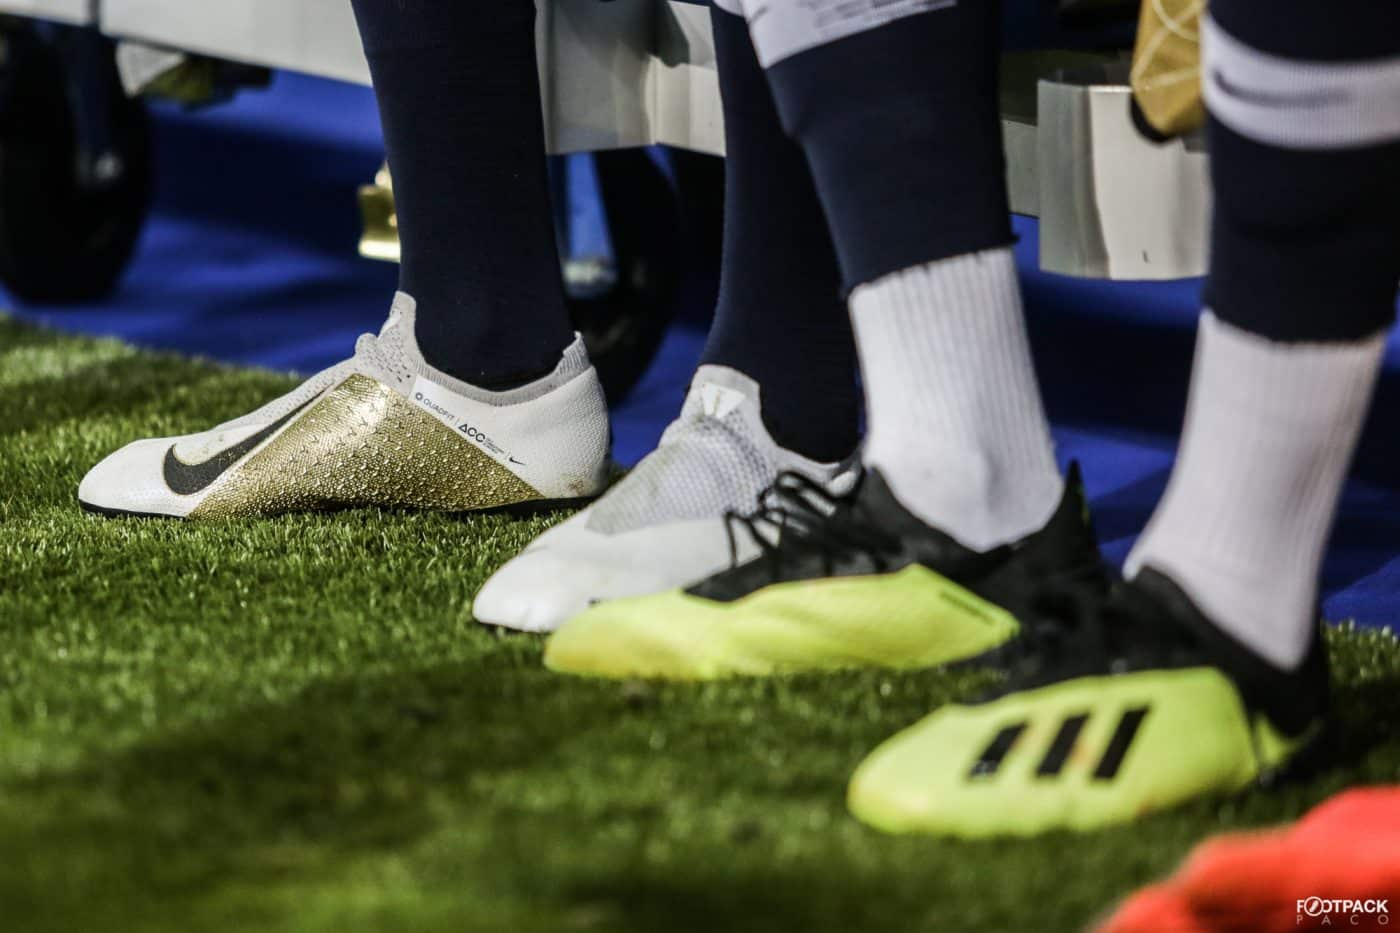 au-stade-france-pays-bas-chaussures